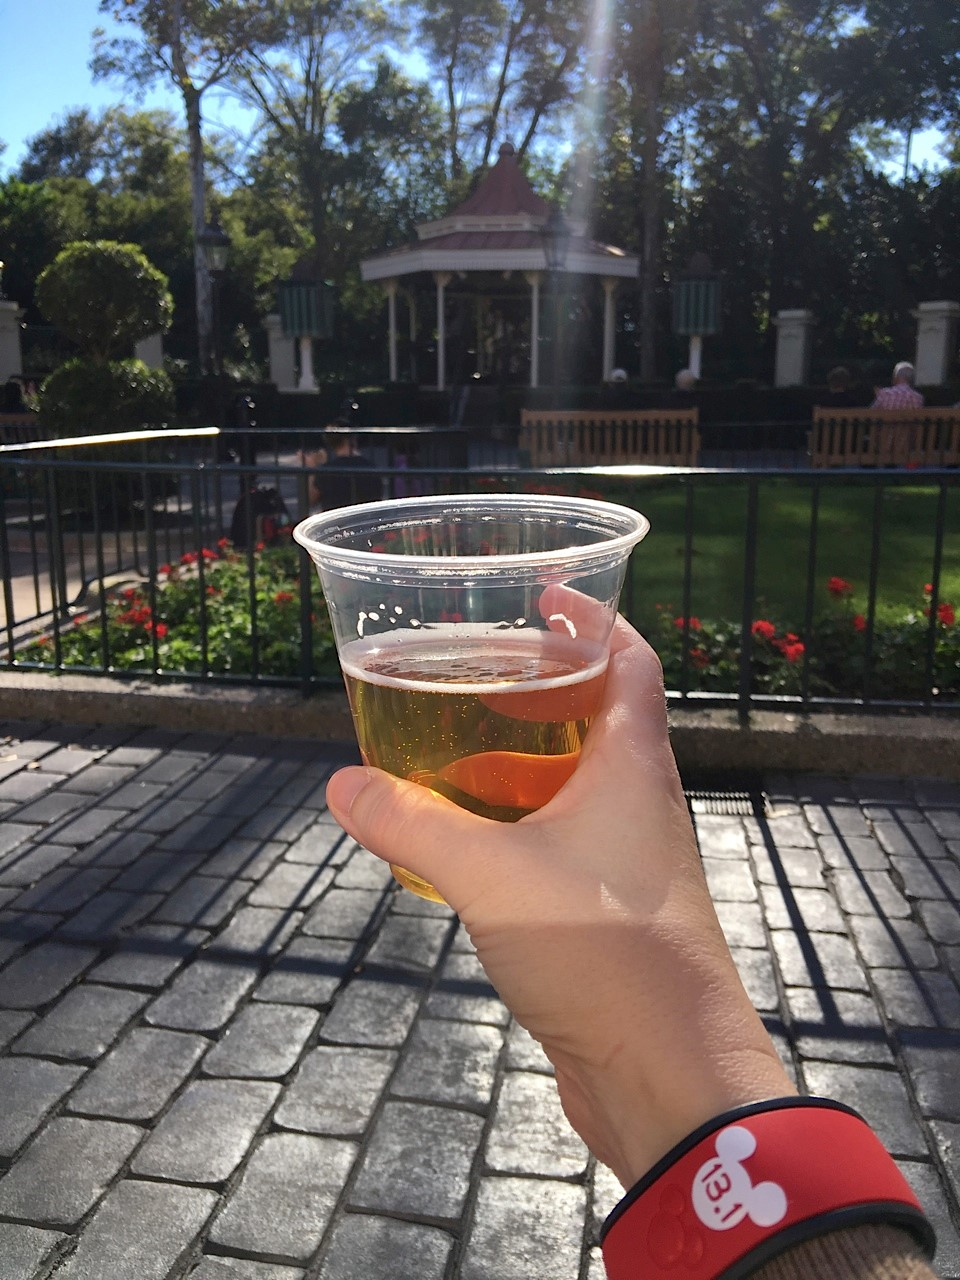 New Alcoholic Drink Options Appearing at Walt Disney World